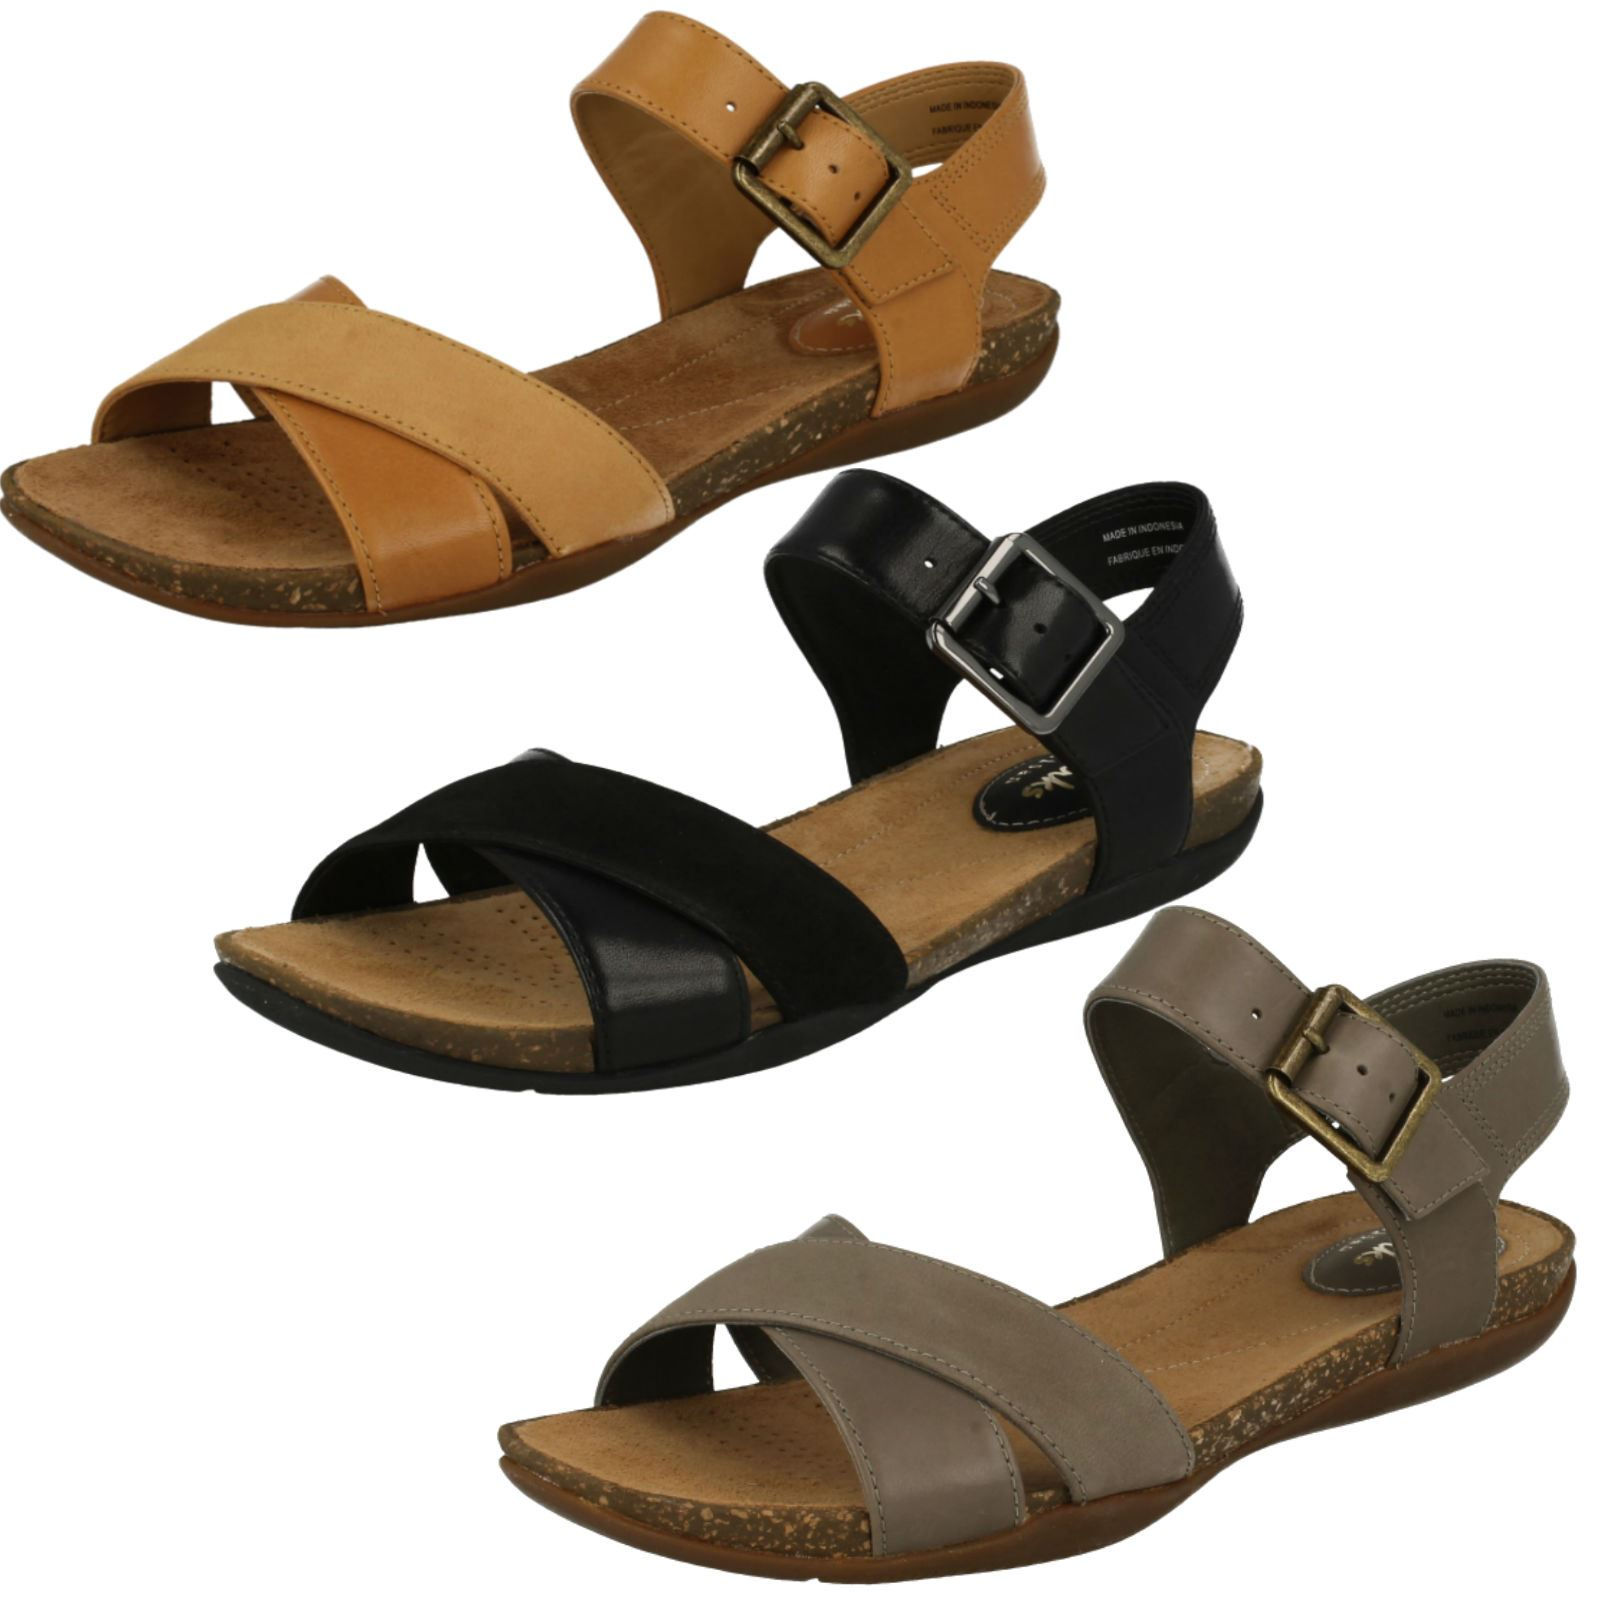 f1857f98fd6 Details about Ladies Clarks Autumn Air Casual Summer Sandals with Buckle